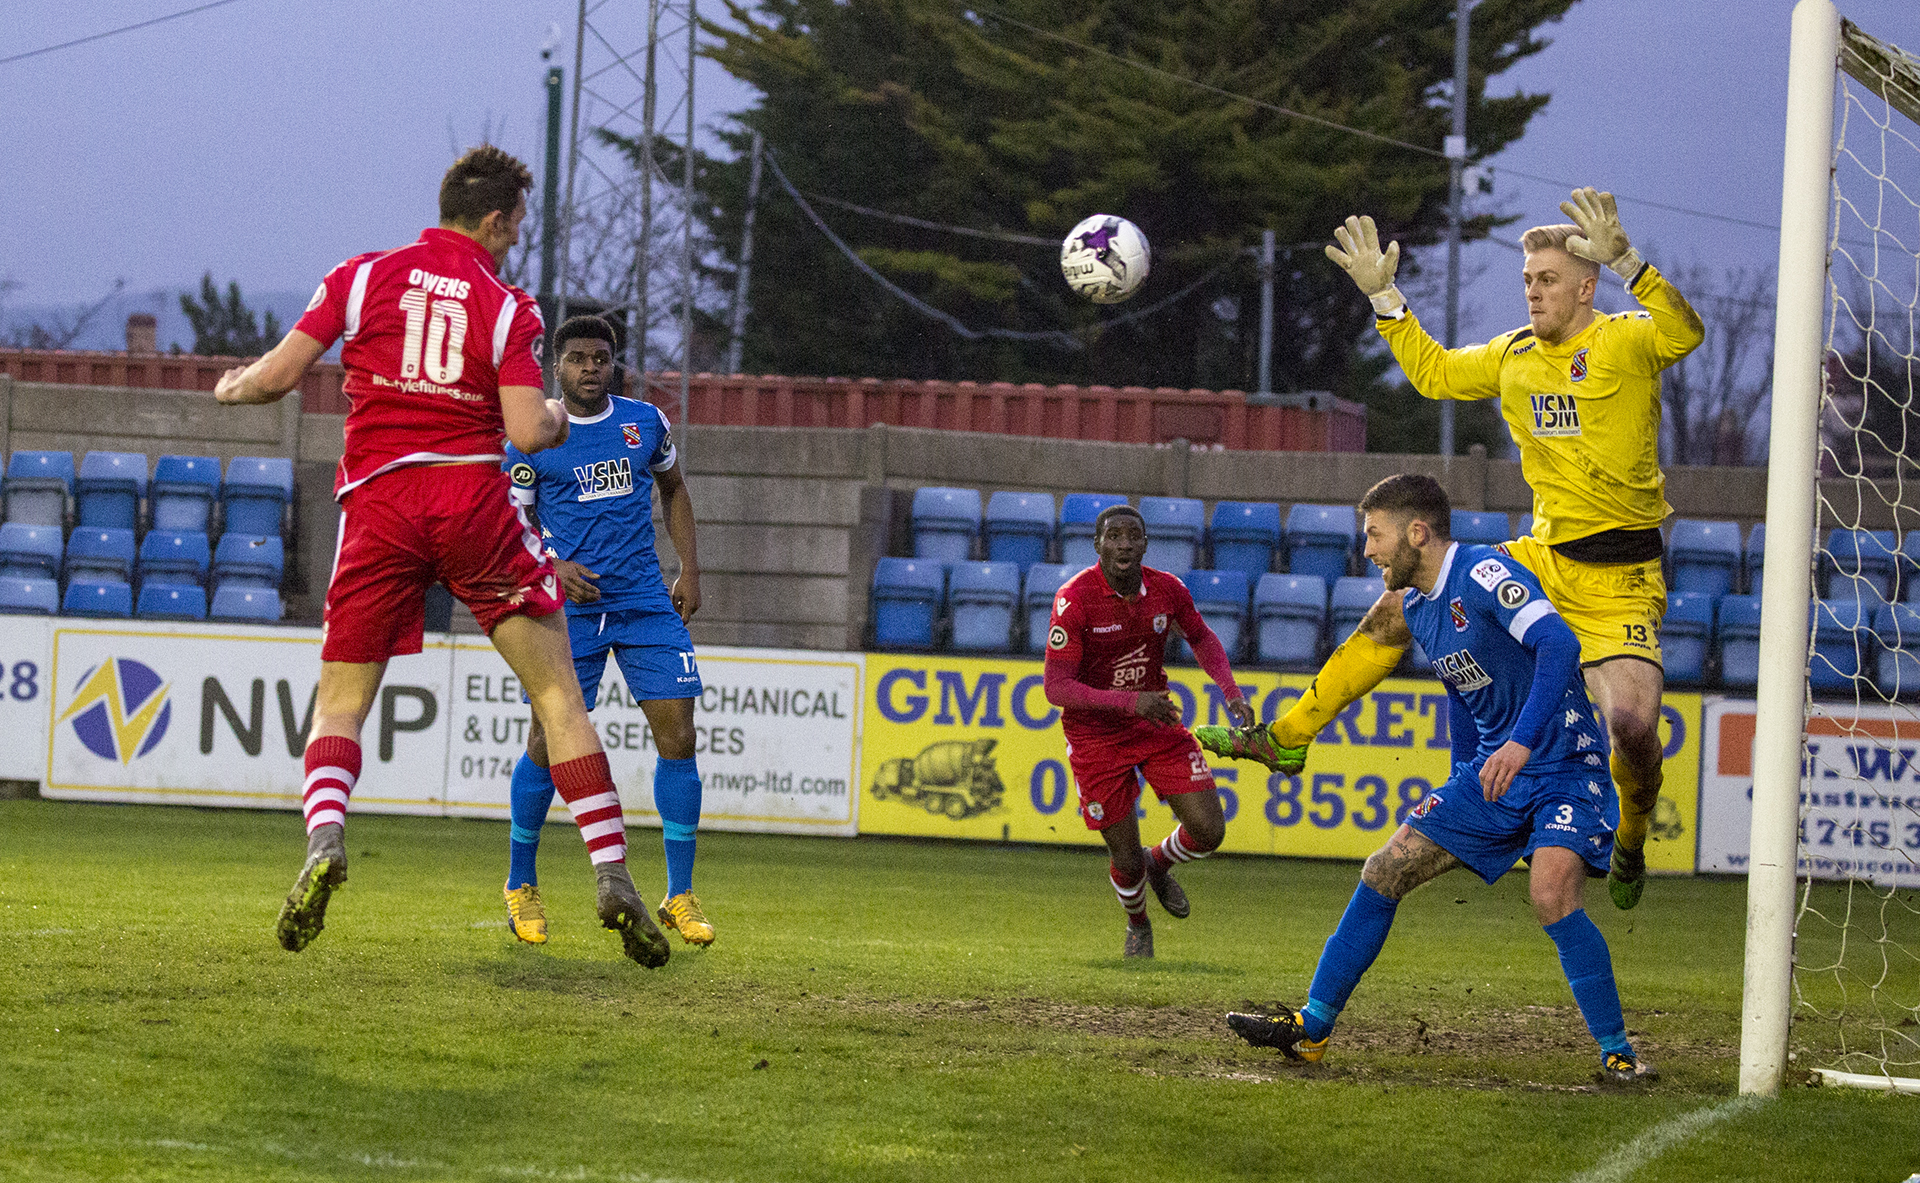 Andy Owens opens the scoring at Rhyl - © NCM Media